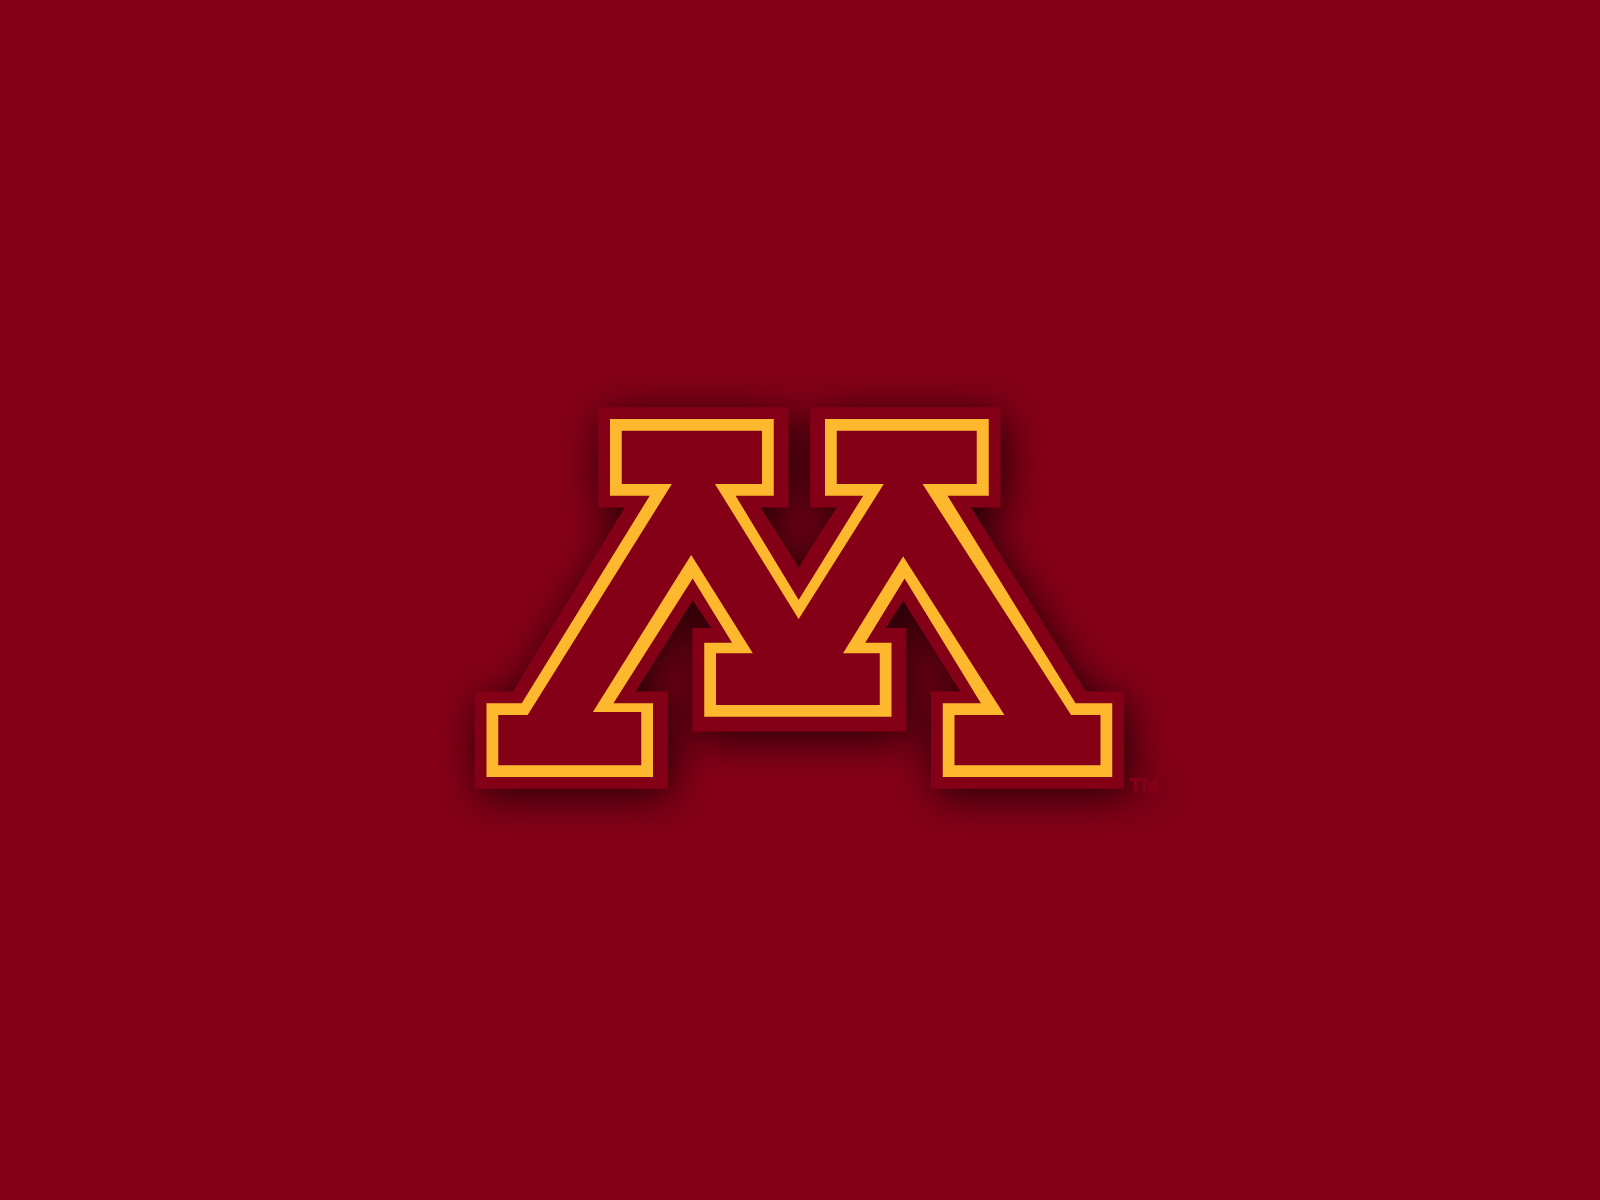 University Of Minnesota Desktop Wallpaper computer desktop wallpapers 1600x1200